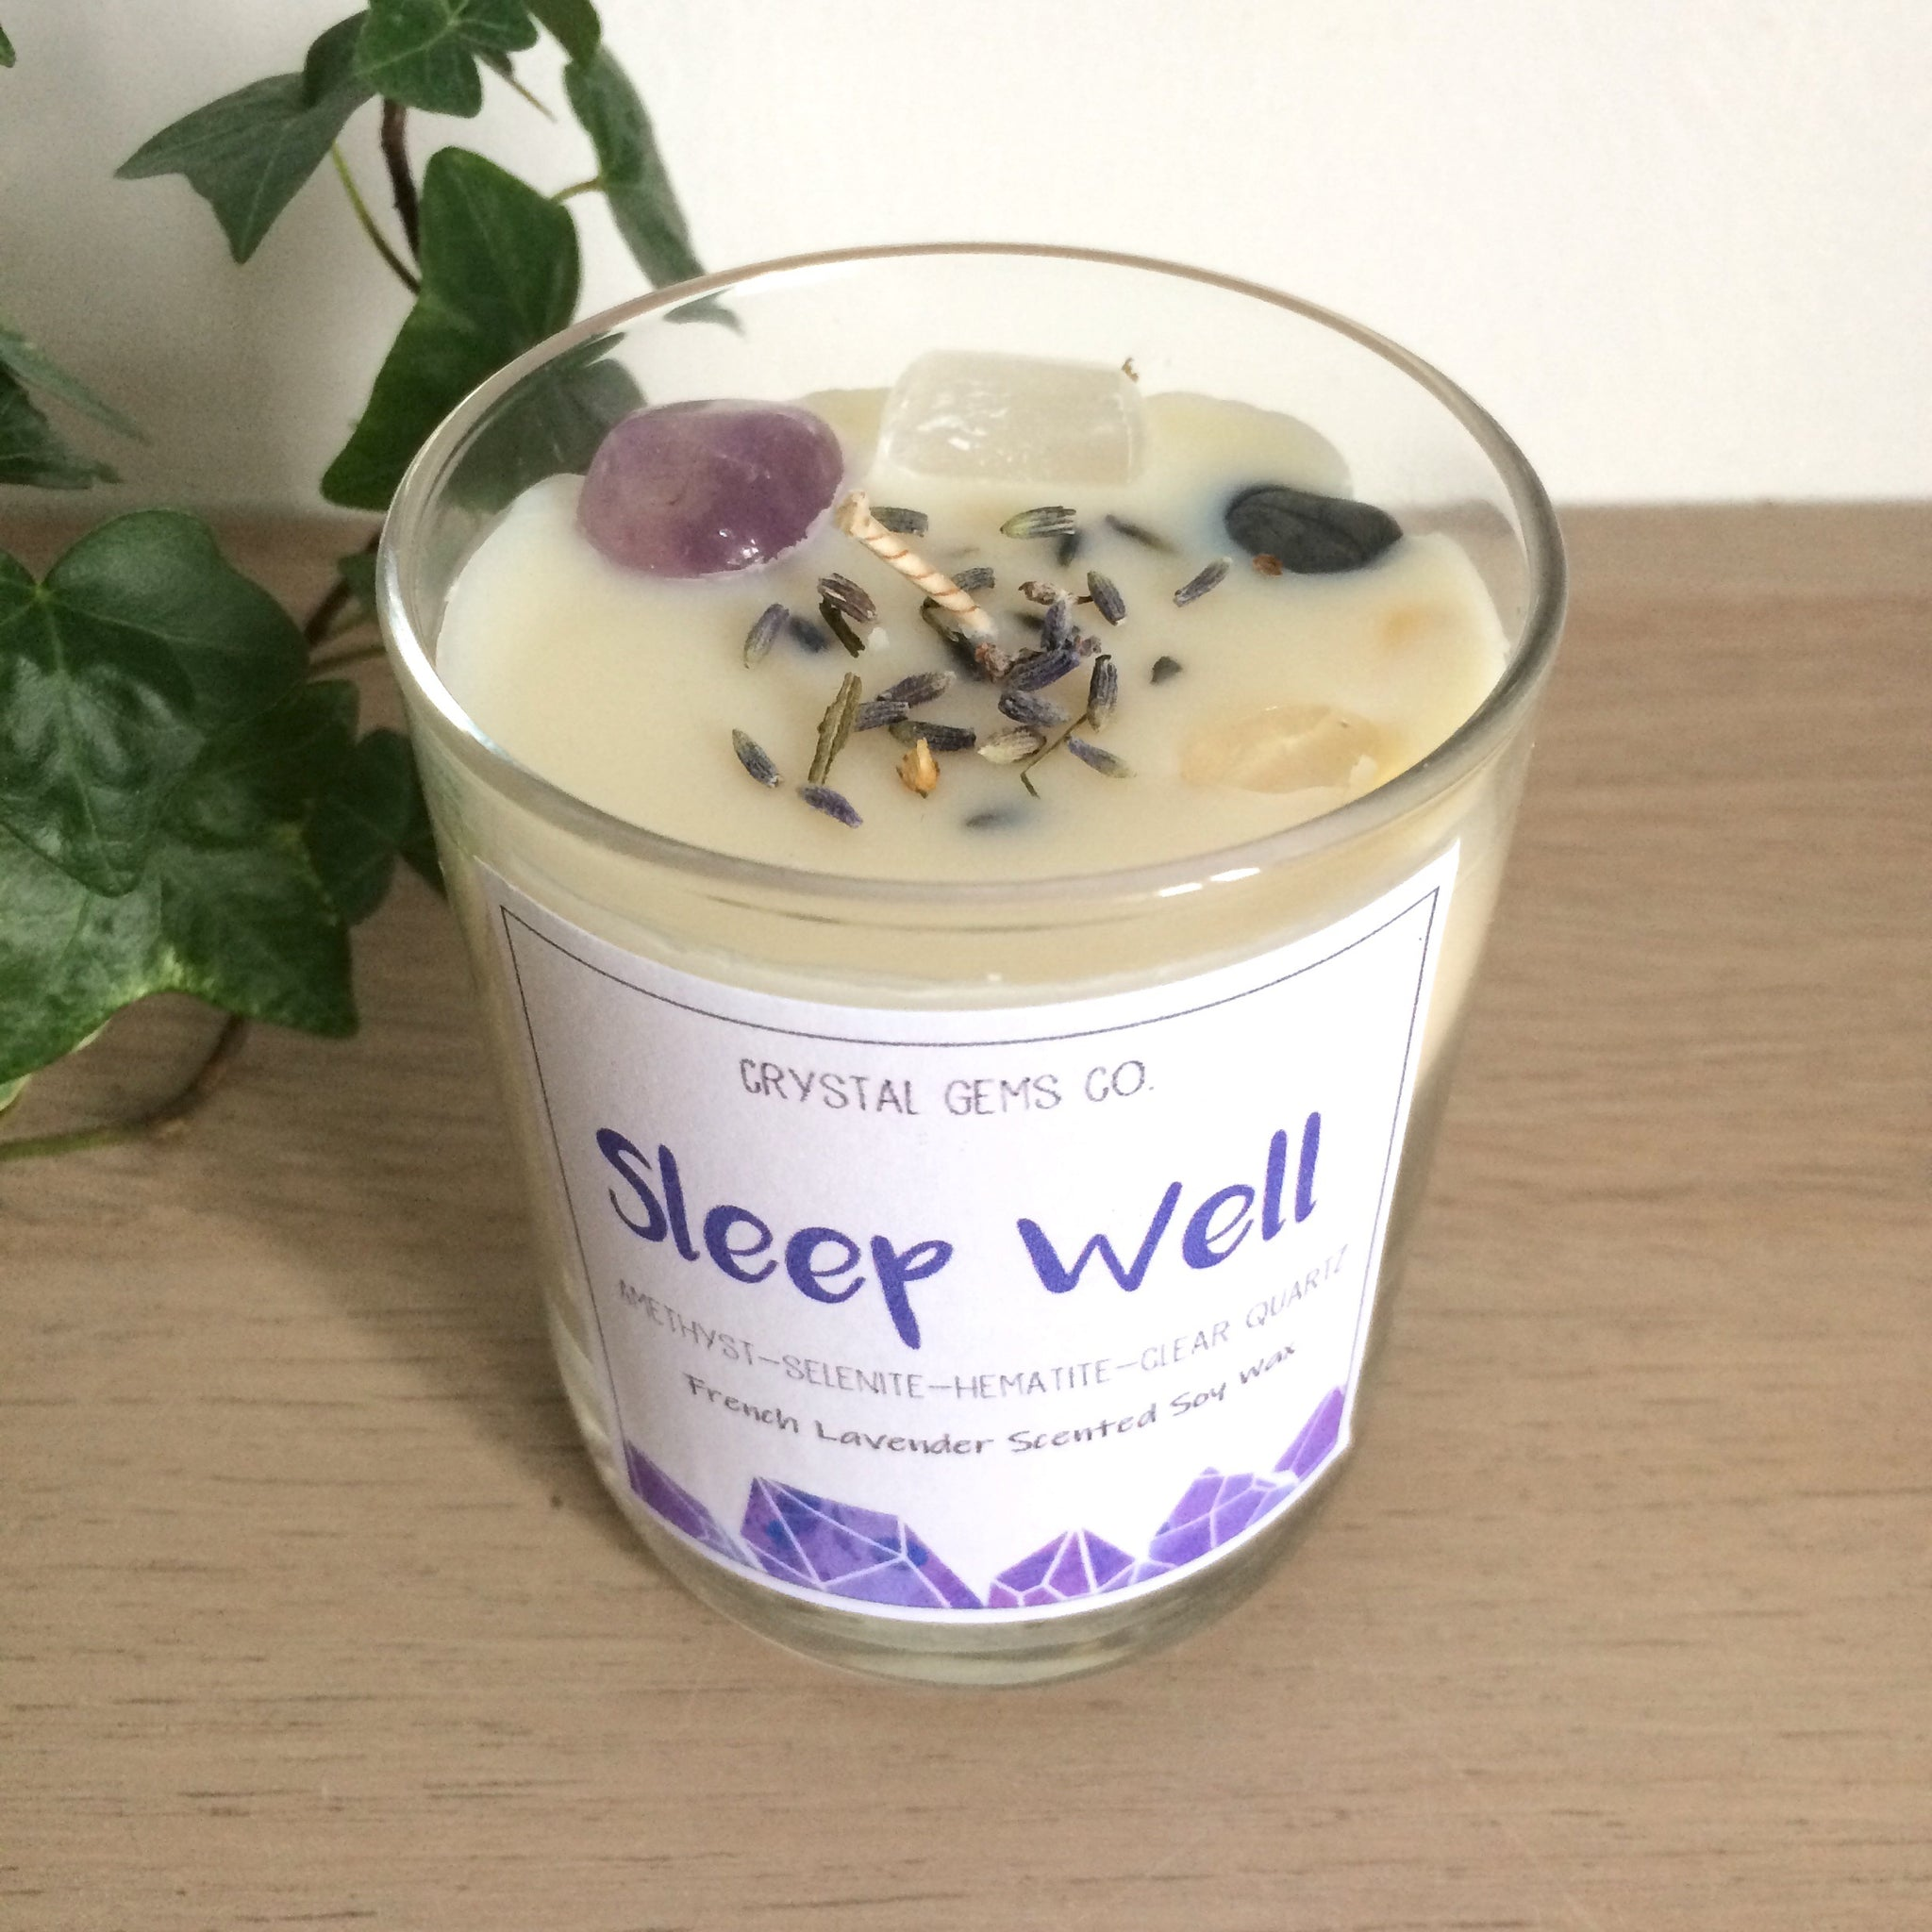 Sleep well soy wax candle Amethyst, Clear quartz, Selenite and Hematite tumbled stone Lavander scent